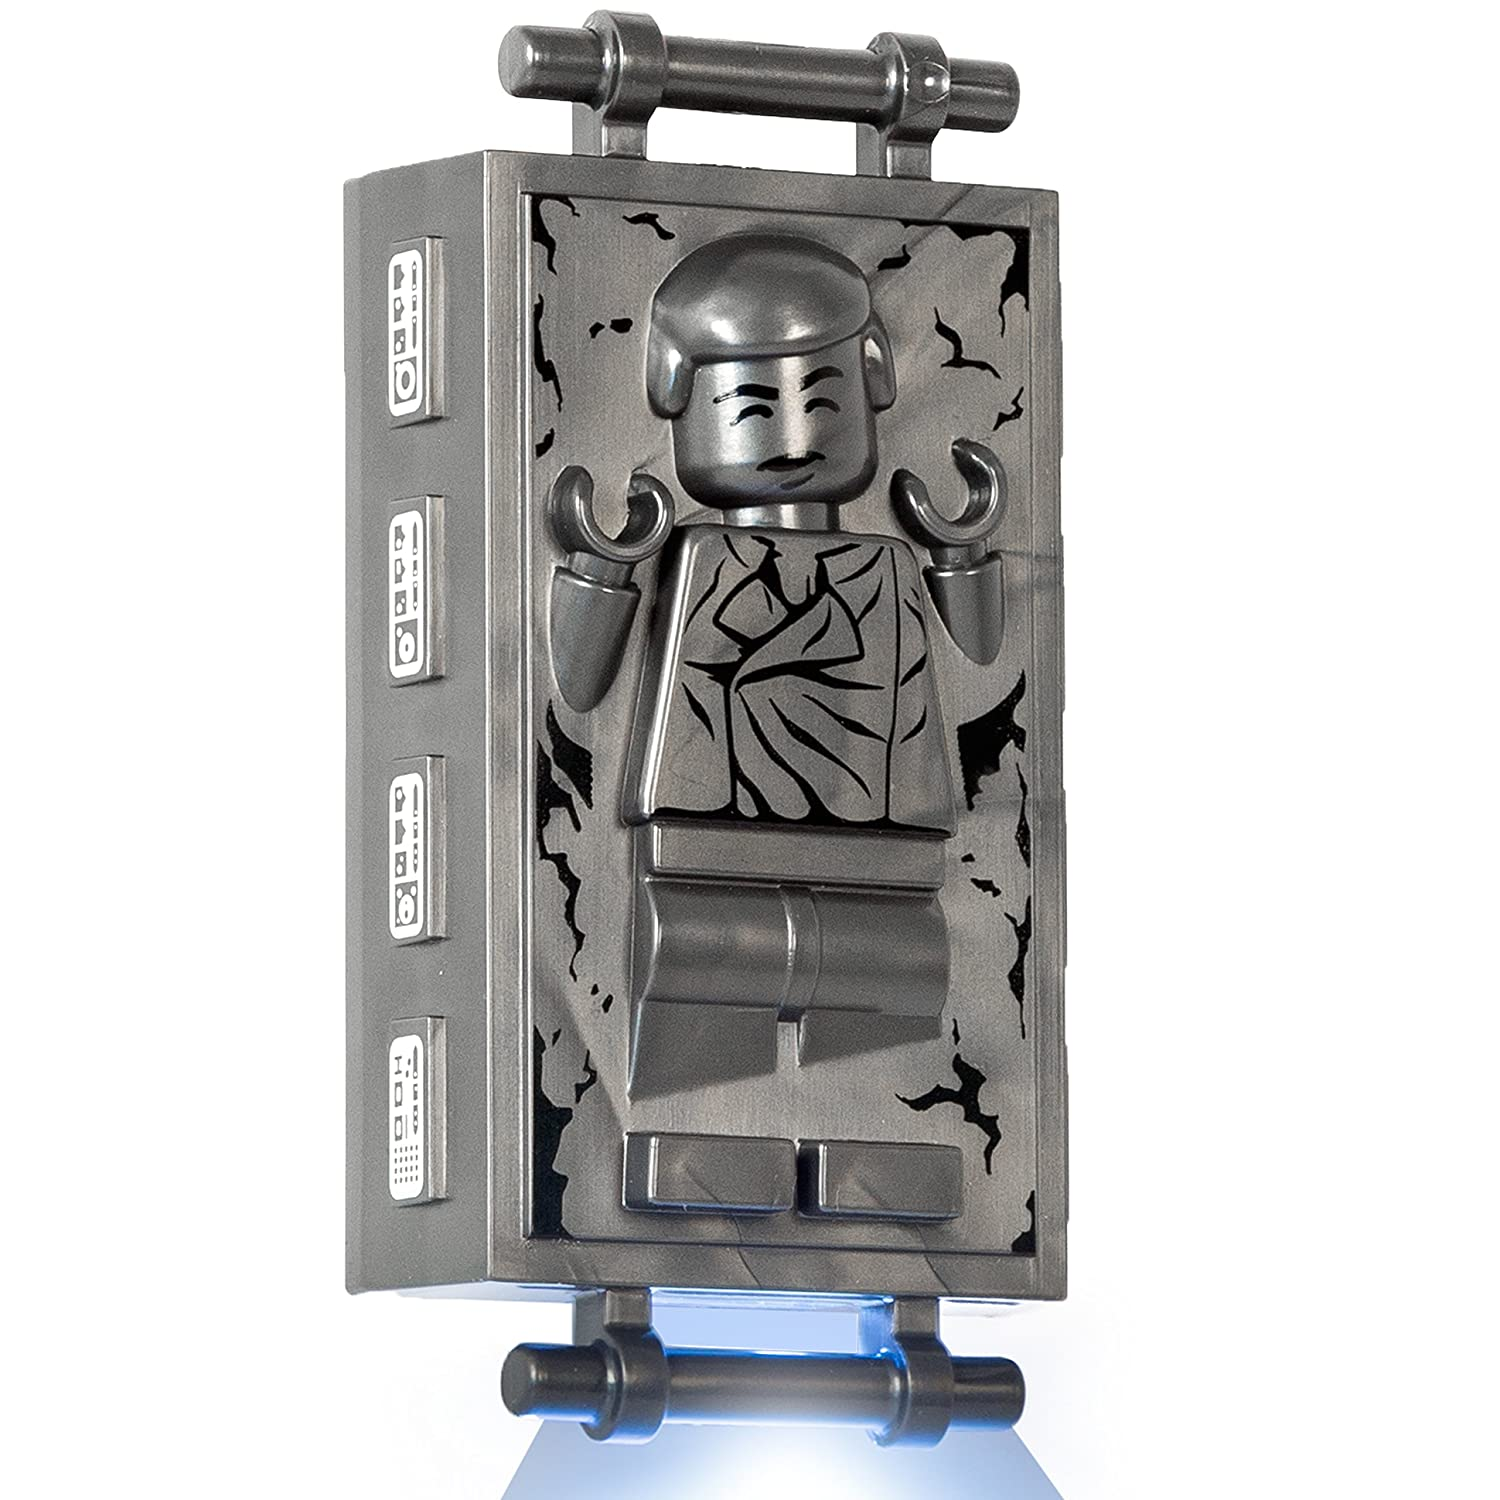 Lego star wars han solo in carbonite led lite key chain - Vaisseau star wars han solo ...